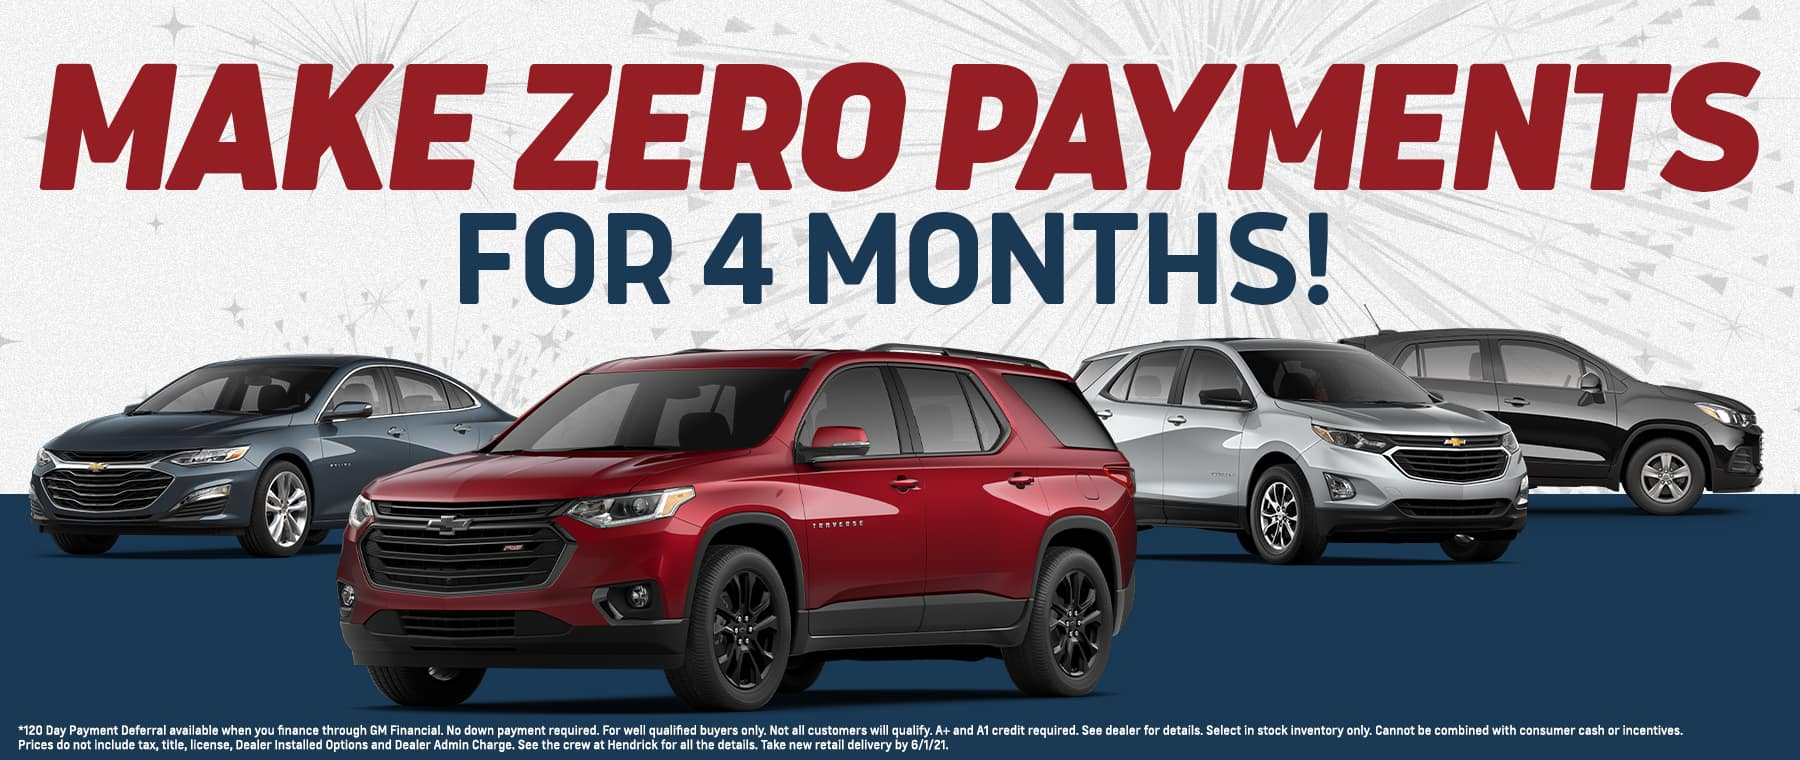 RHchevyDuluth_May21_JM_offers_payments_1800x760